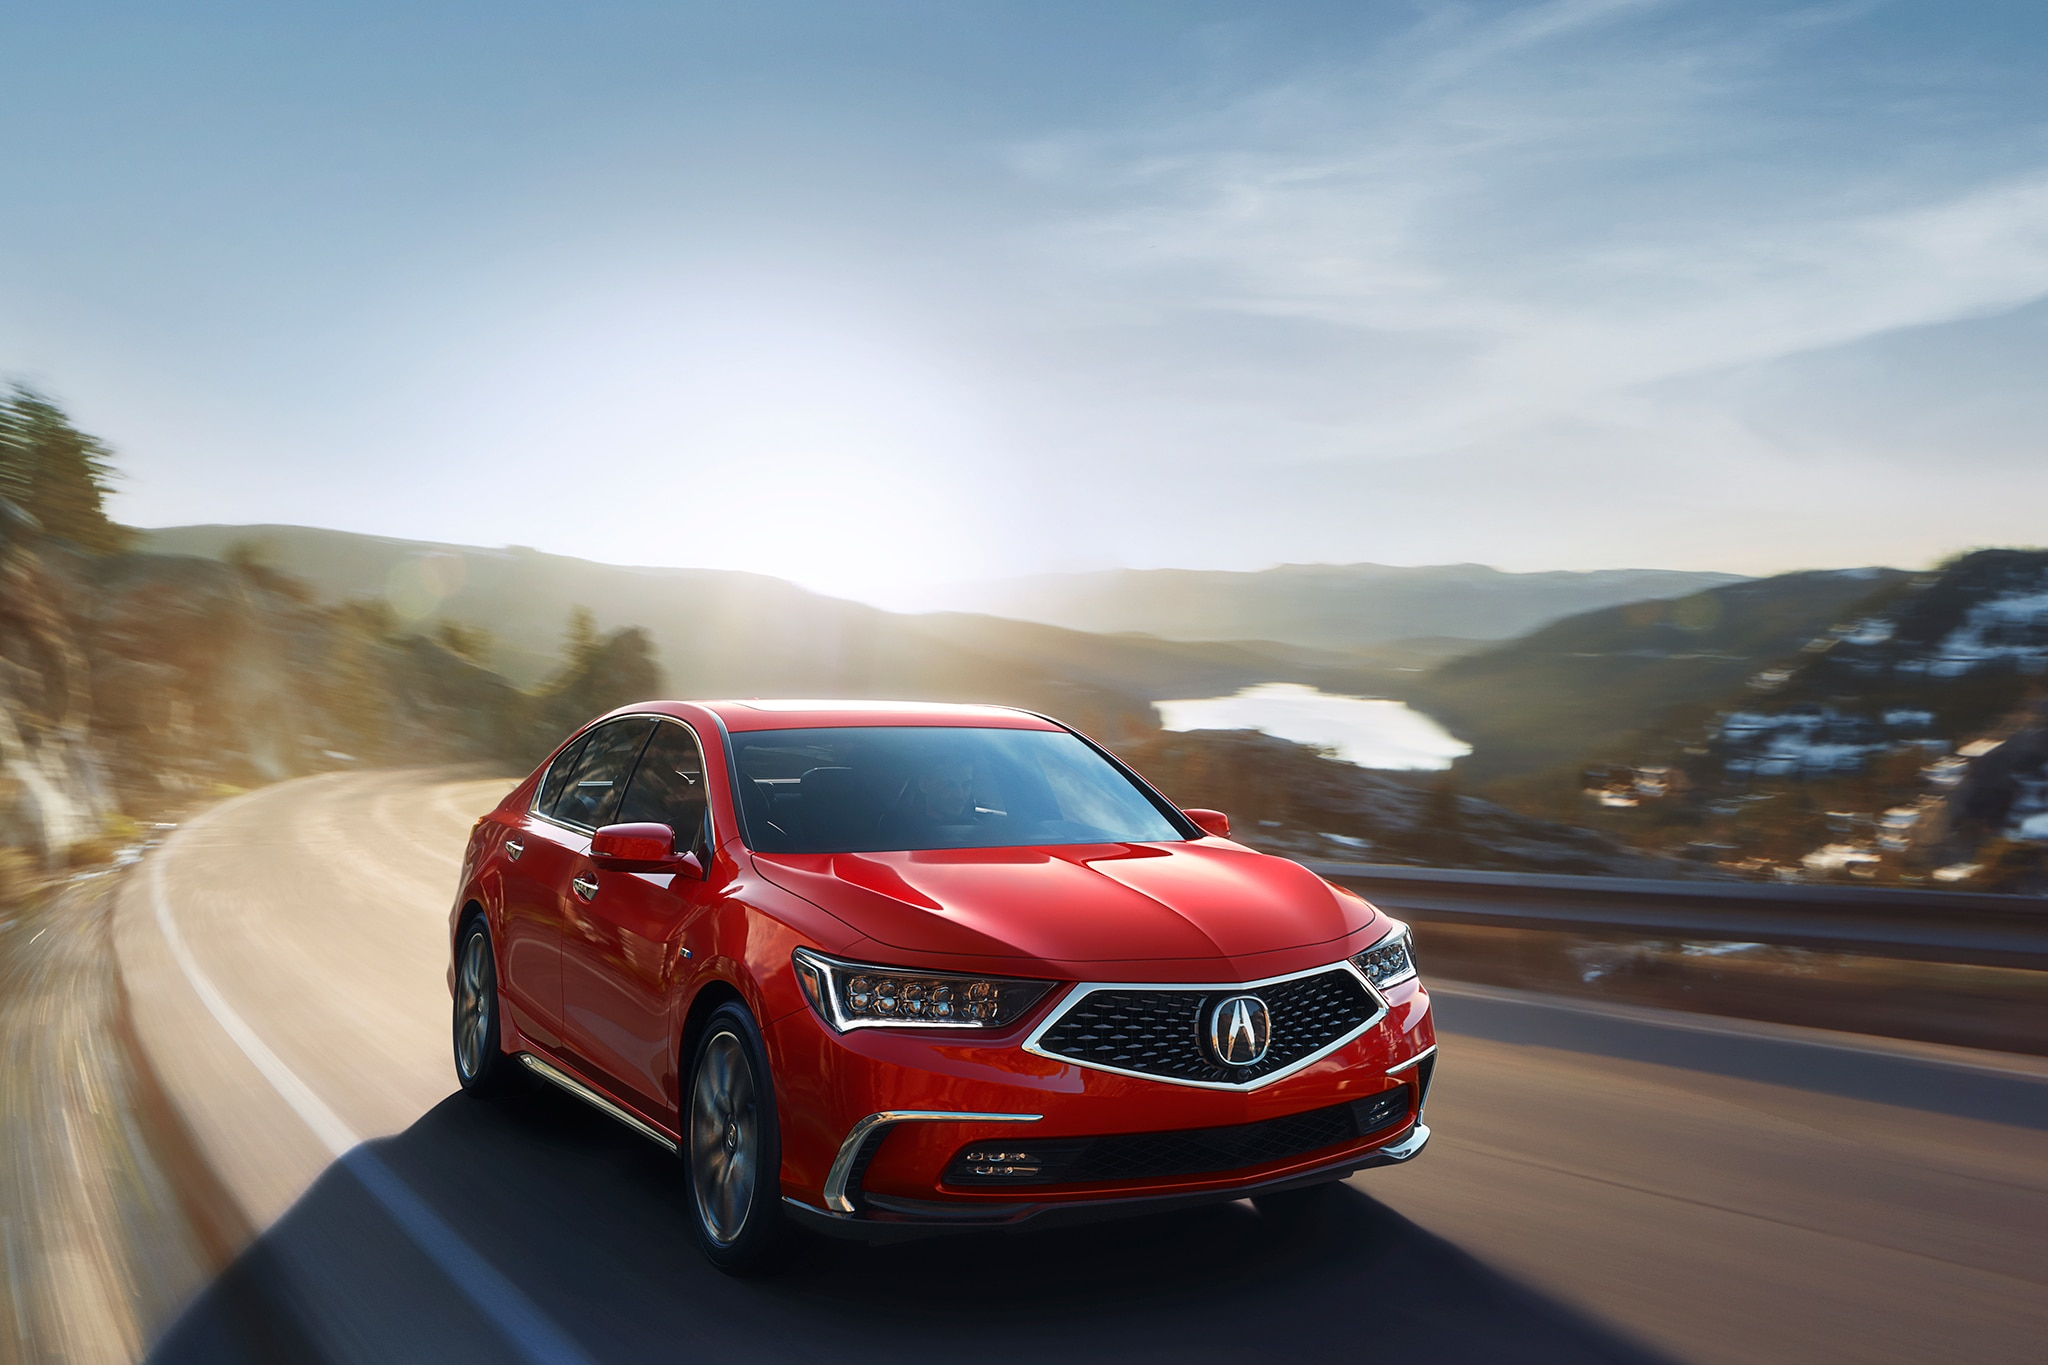 2018 Acura RLX Sport Hybrid Front Three Quarter In Motion